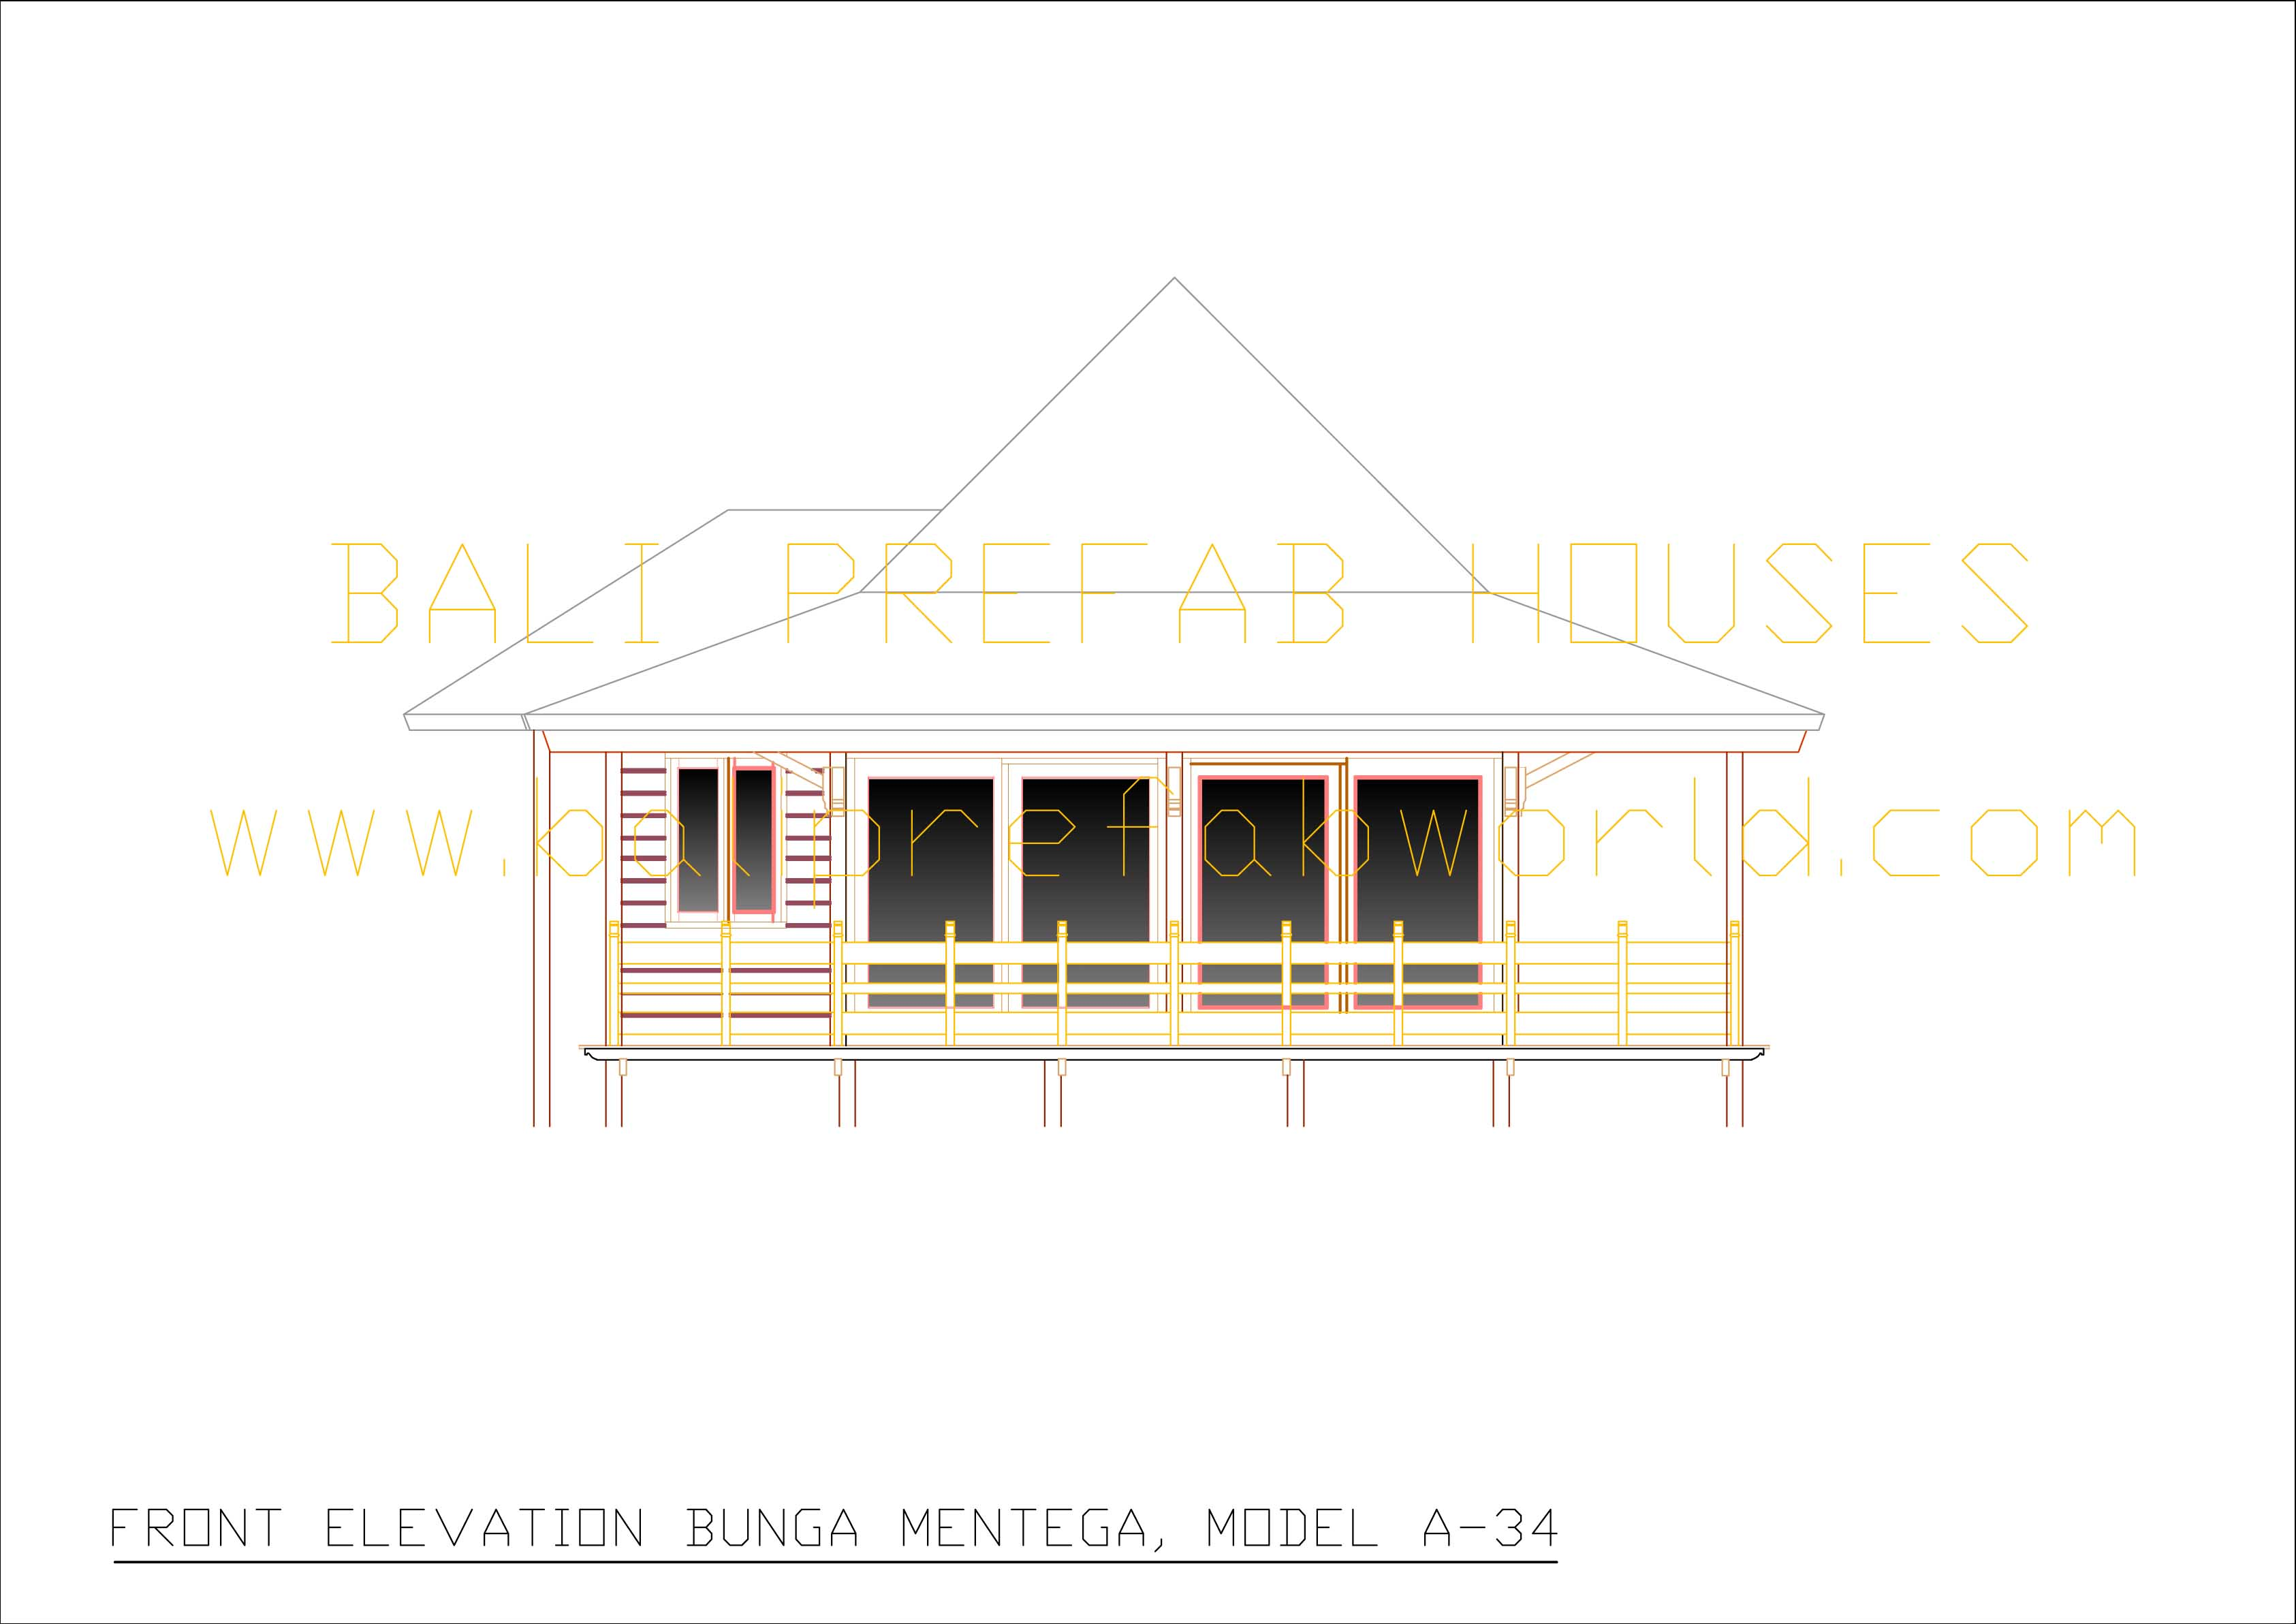 Bunga-mentega front elevation